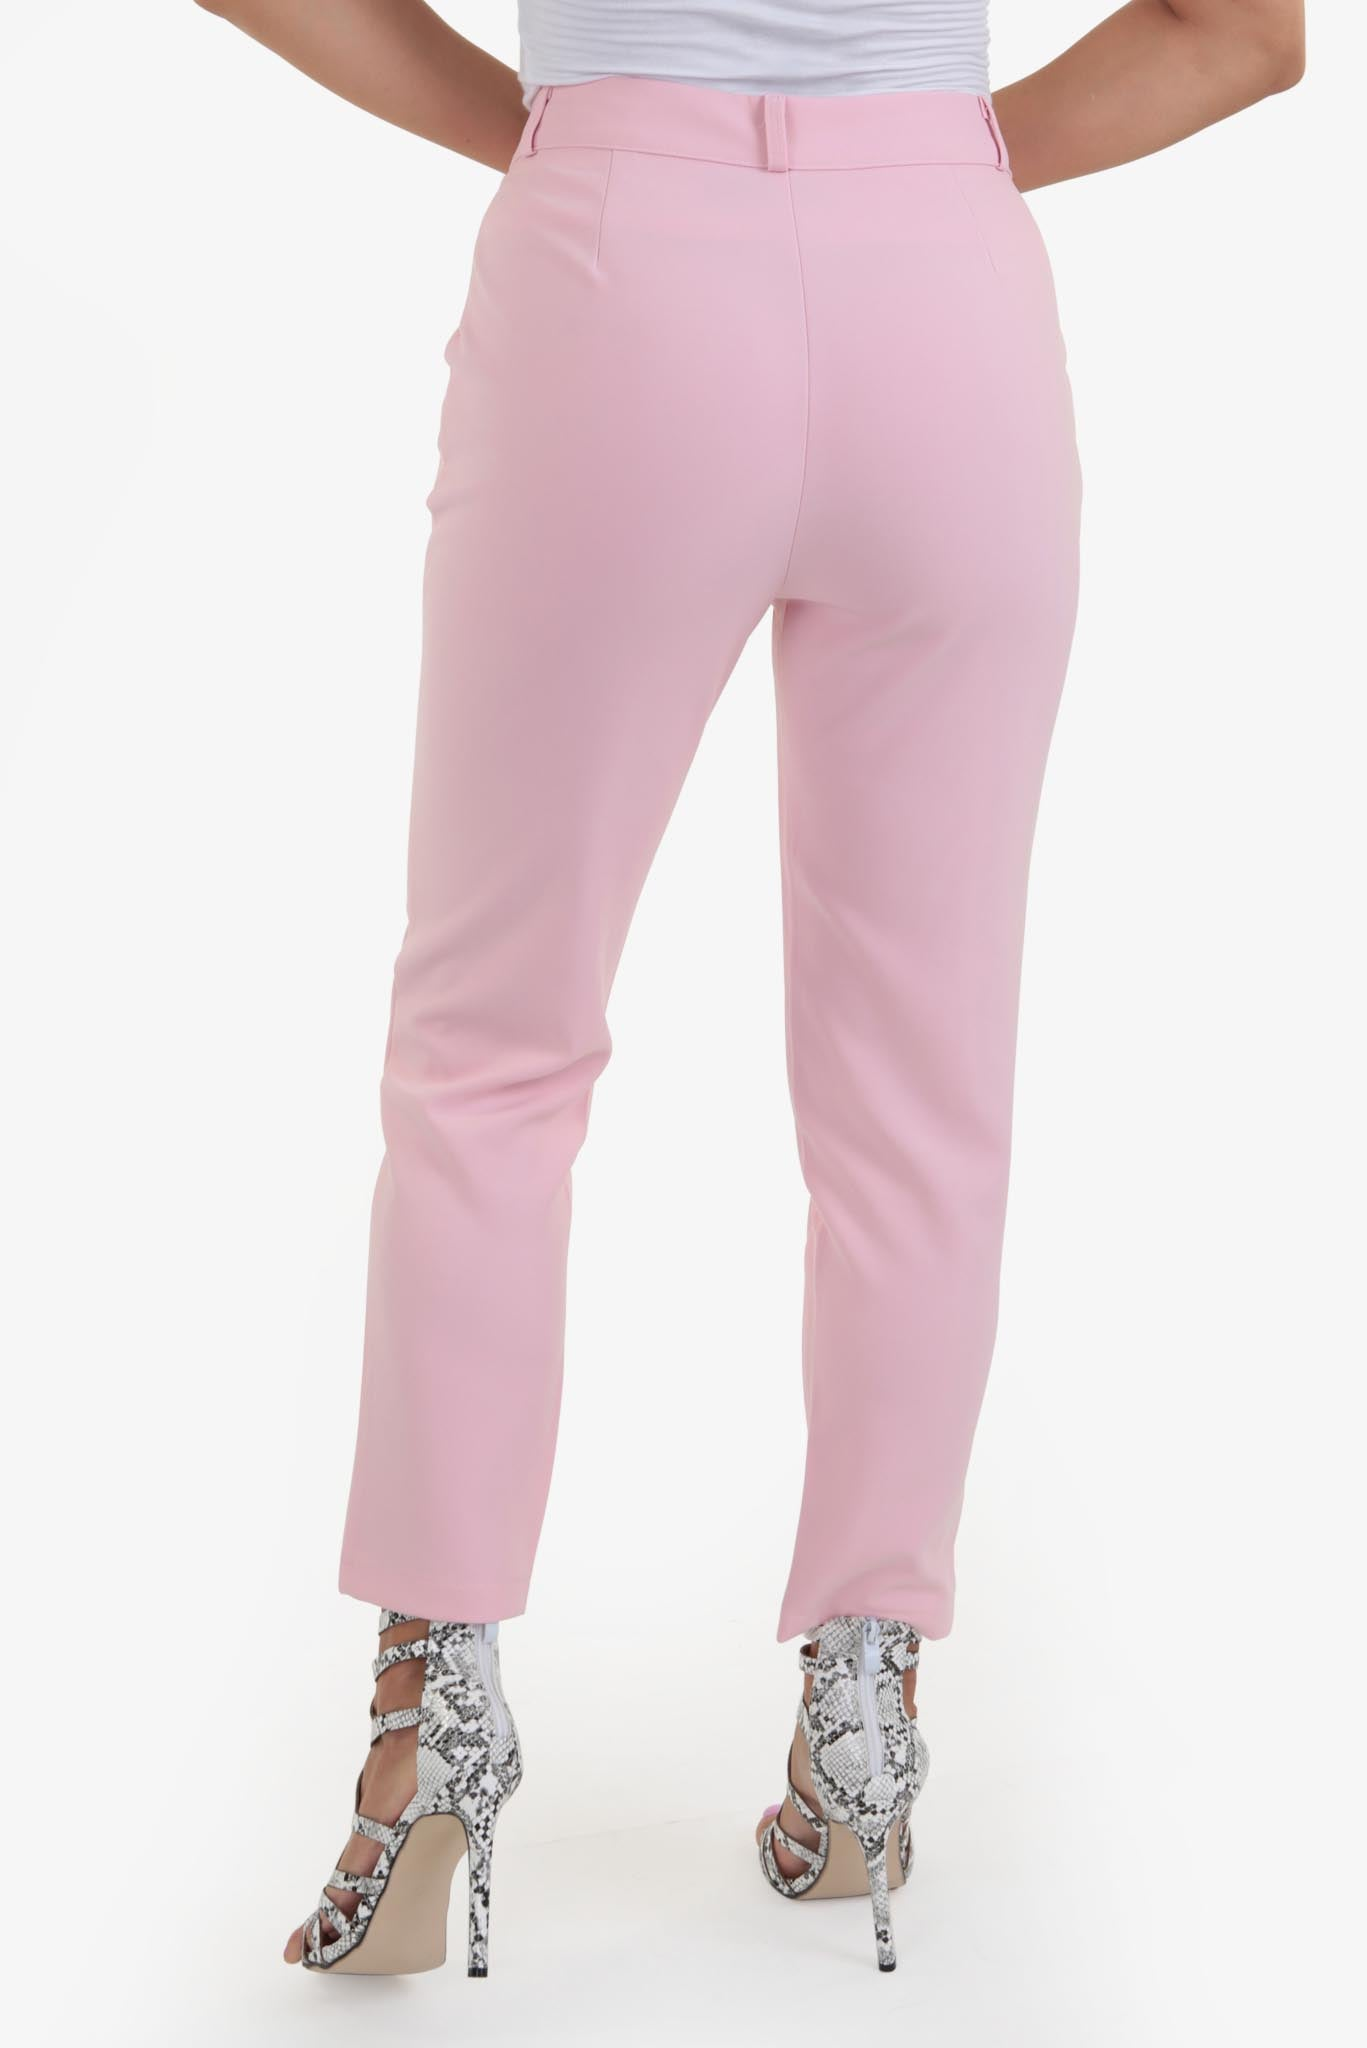 pants pink | Raw Orange